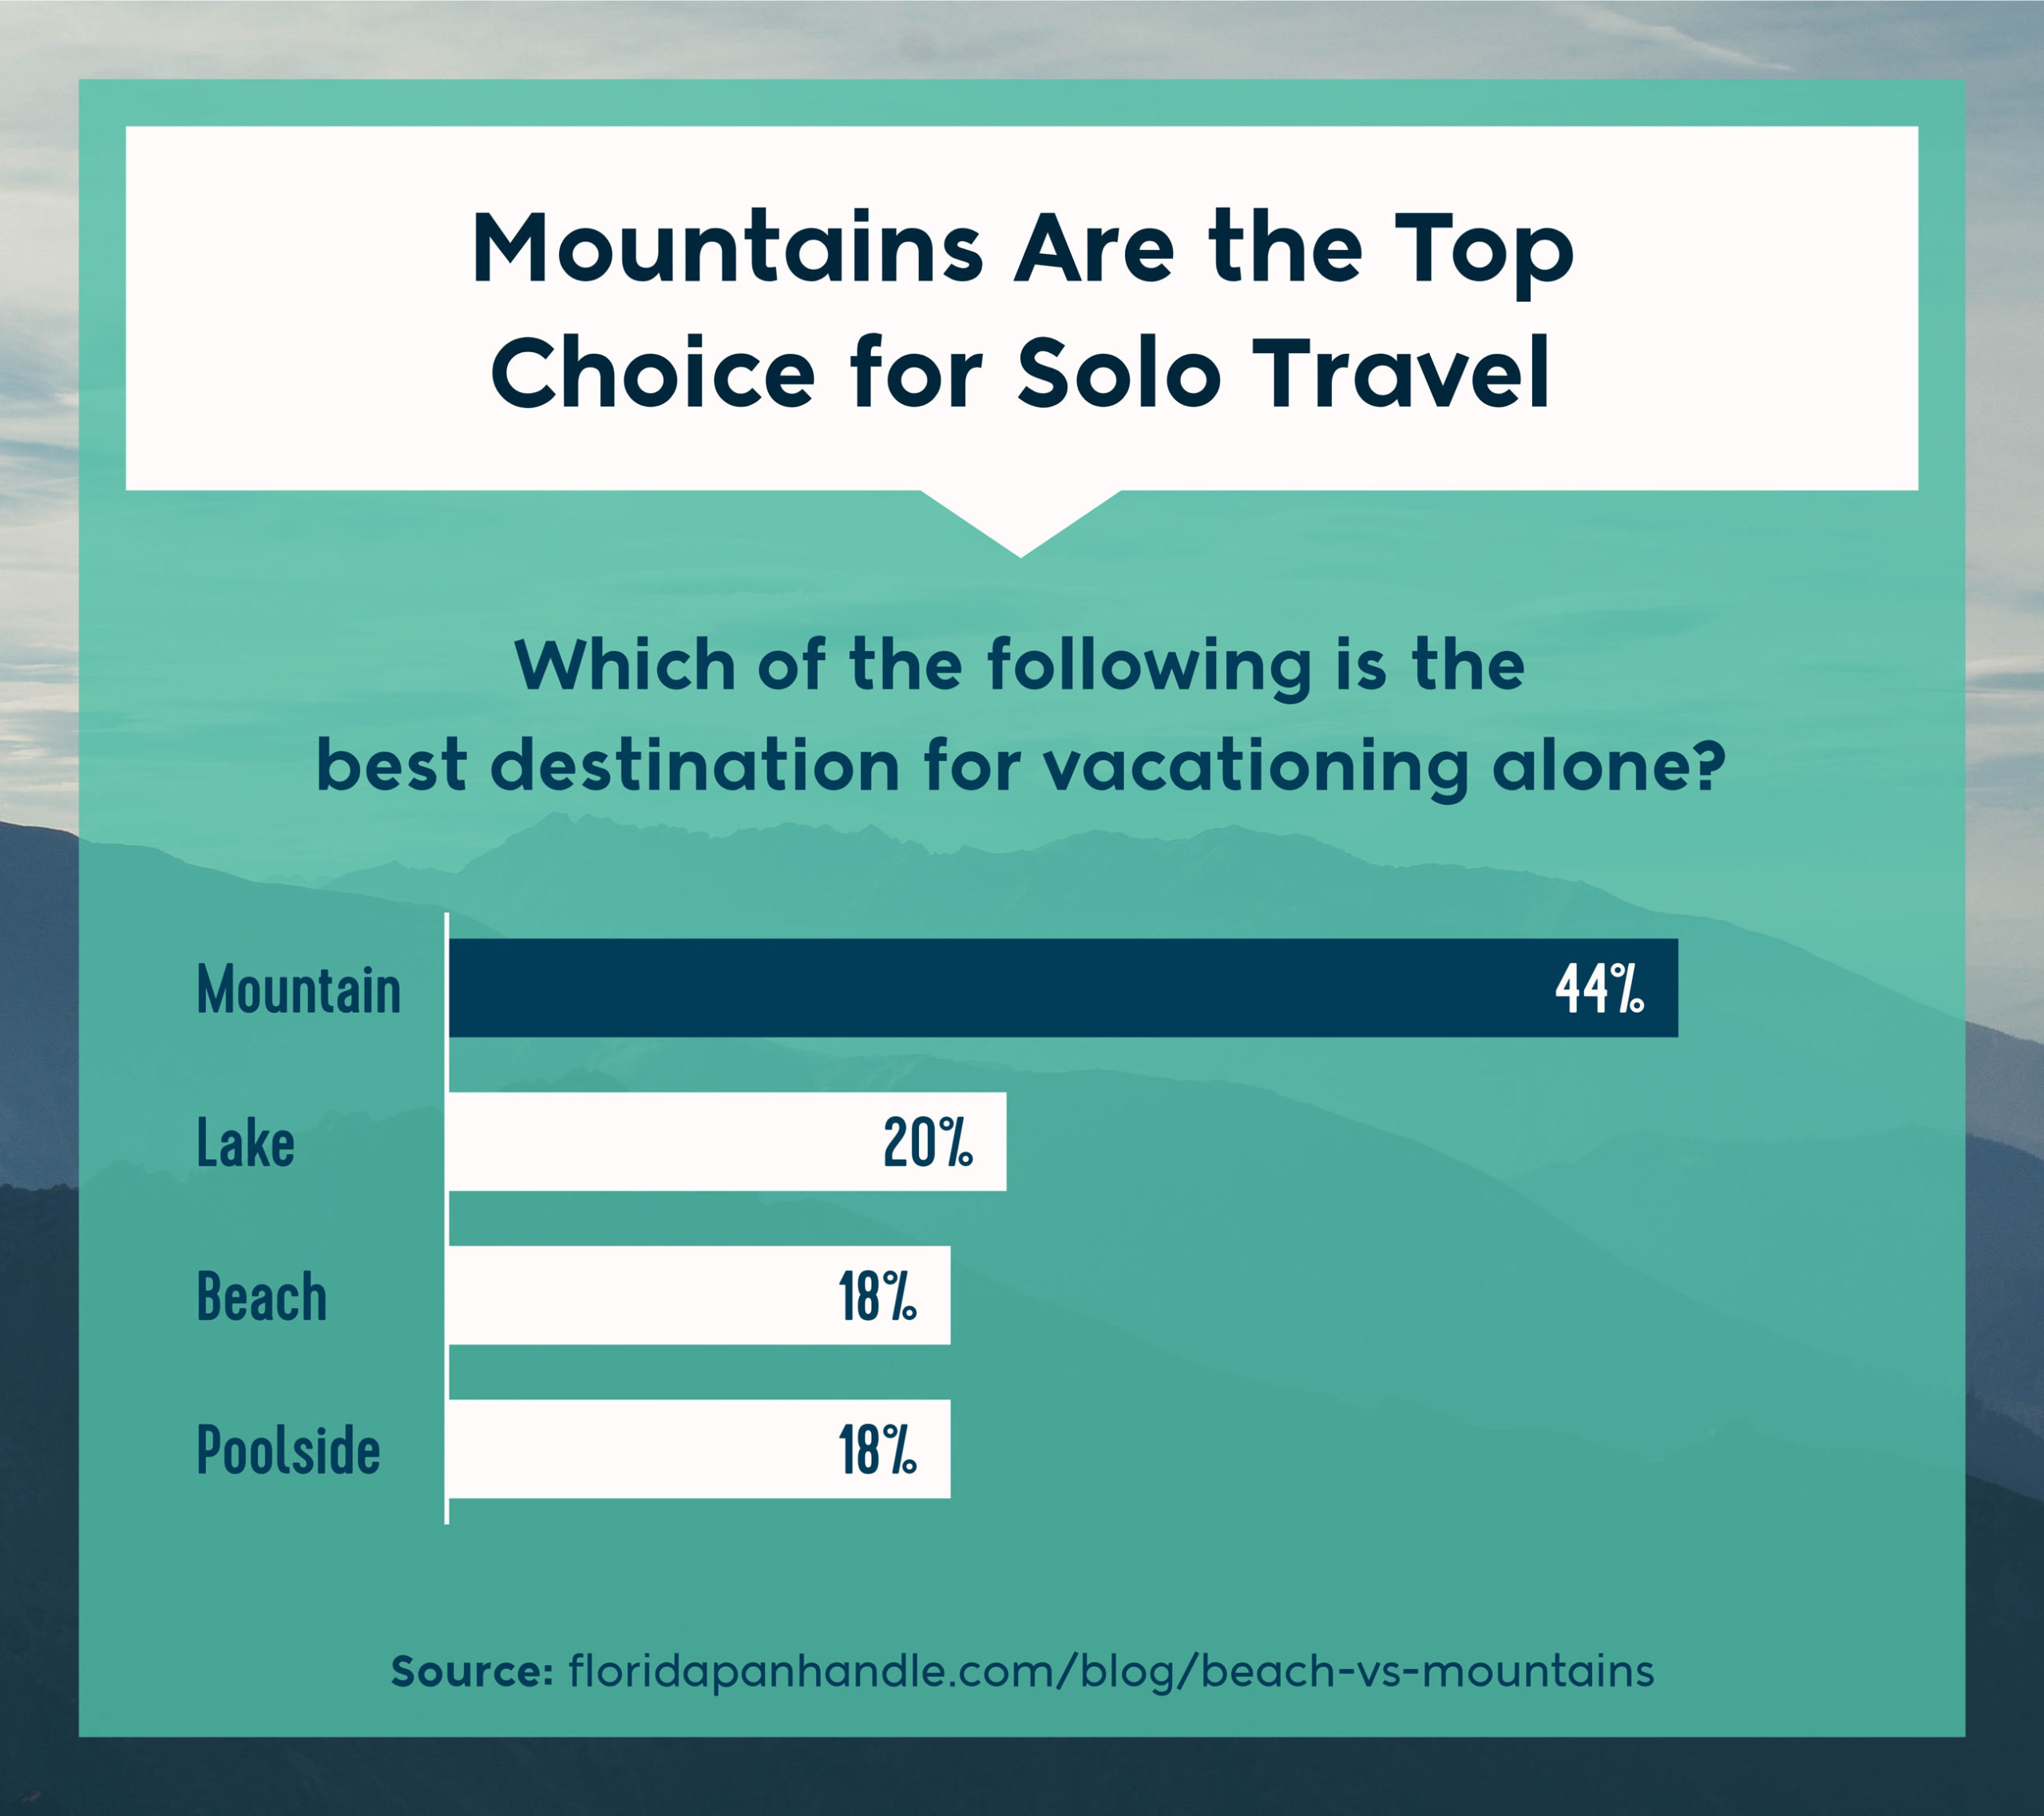 which of the following is the best destination for vacationing alone